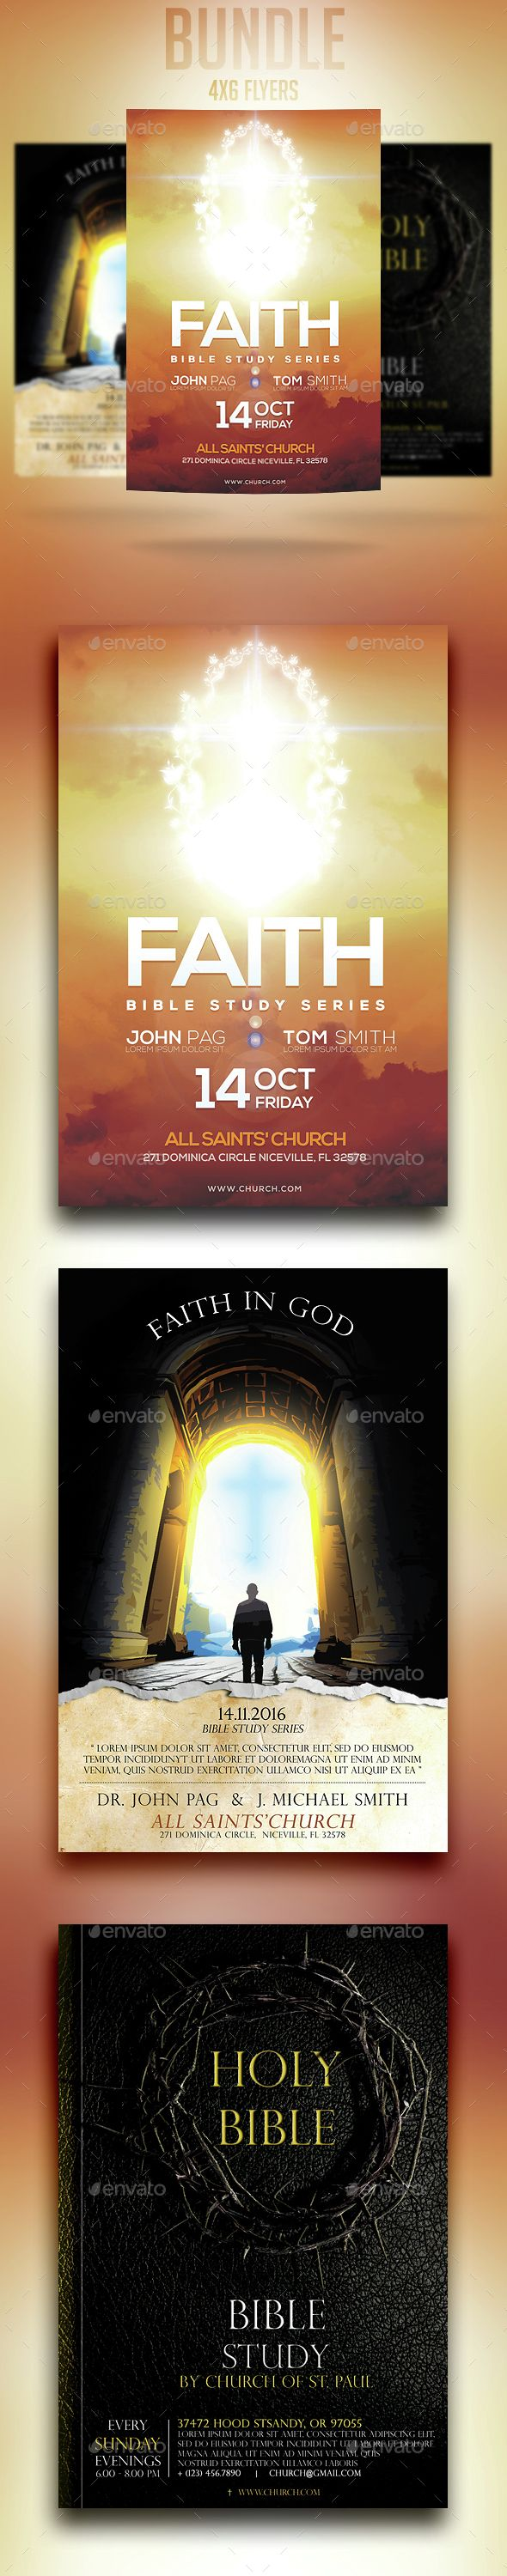 x church flyers bundle pathways church and paths 4x6 church flyers bundle